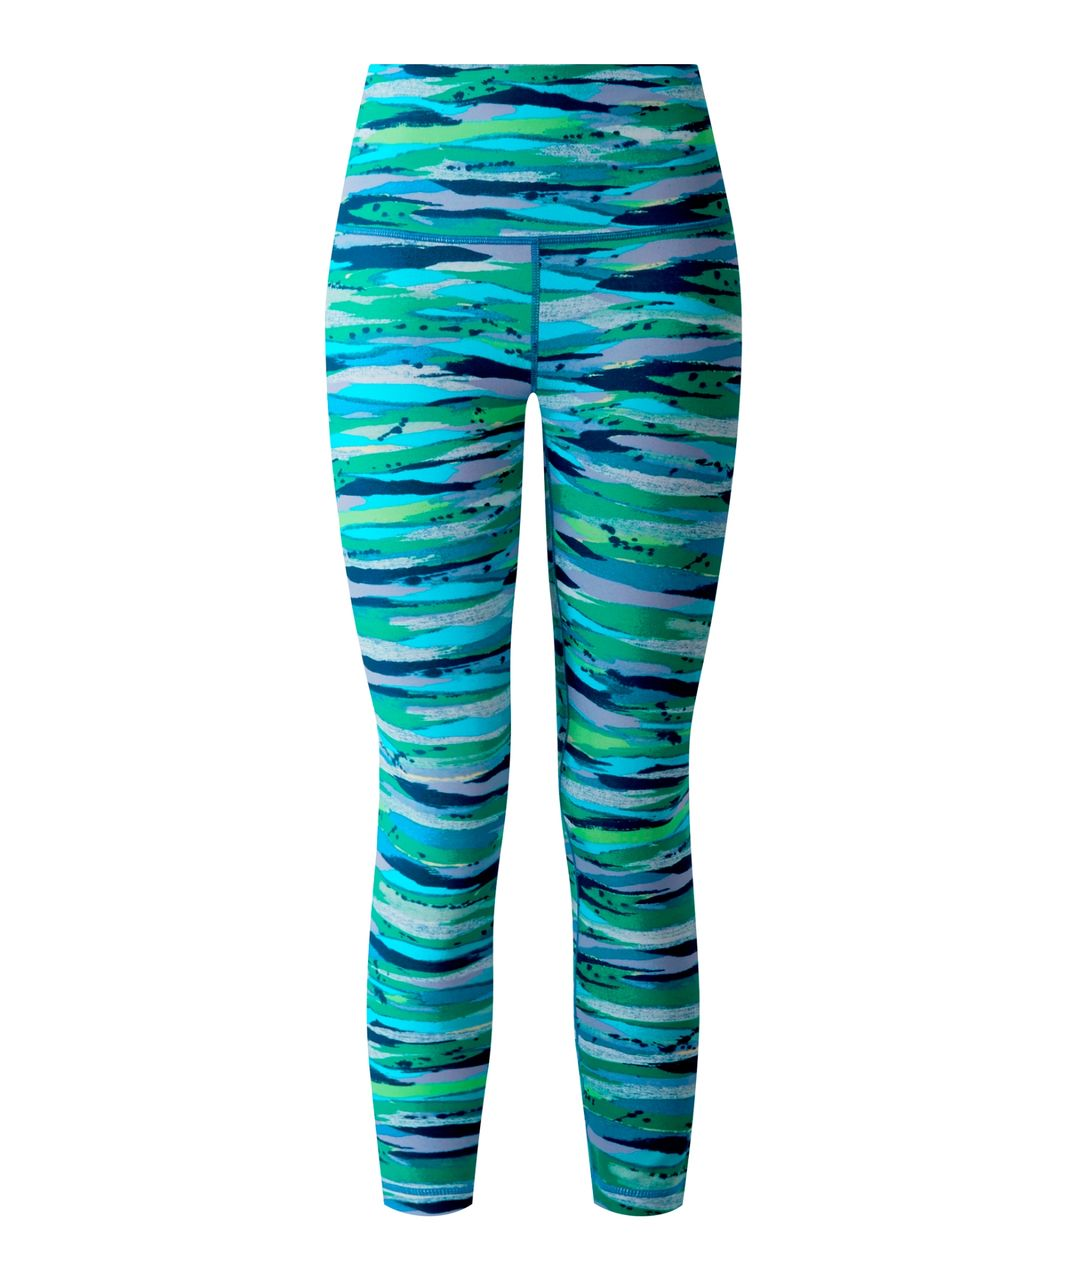 Lululemon High Times Pant - Seven Wonders Multi